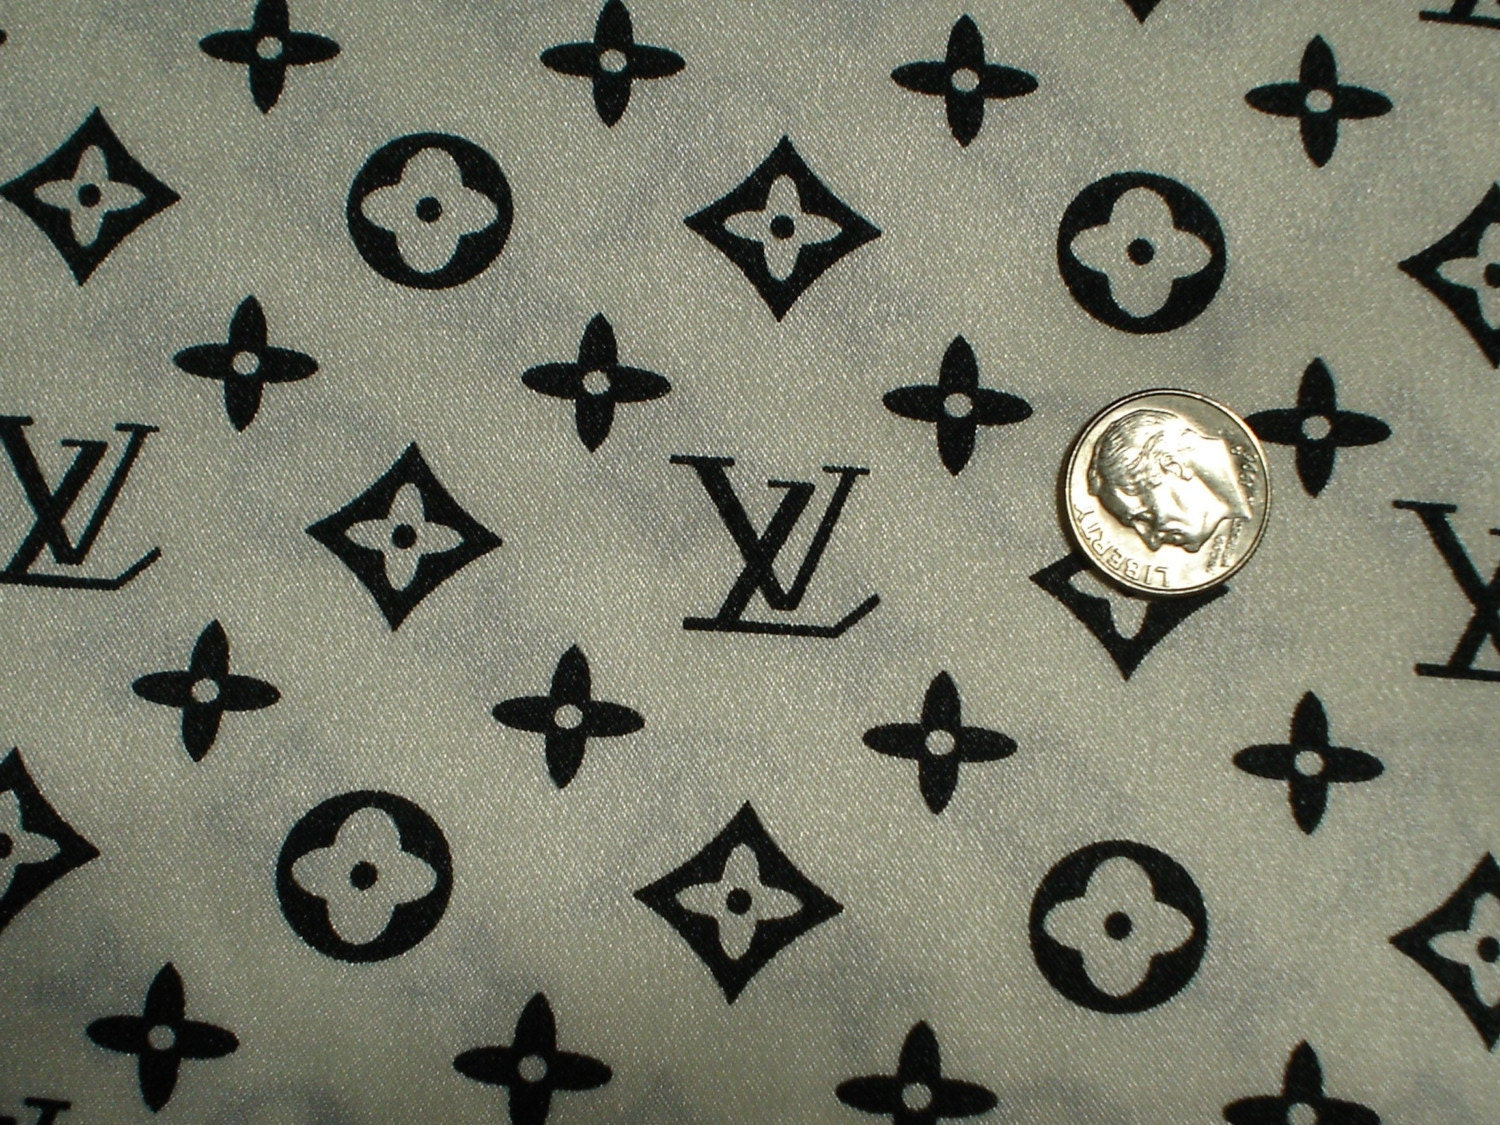 Lv Louis Vuitton Designer Fabric By Designsbydt On Etsy